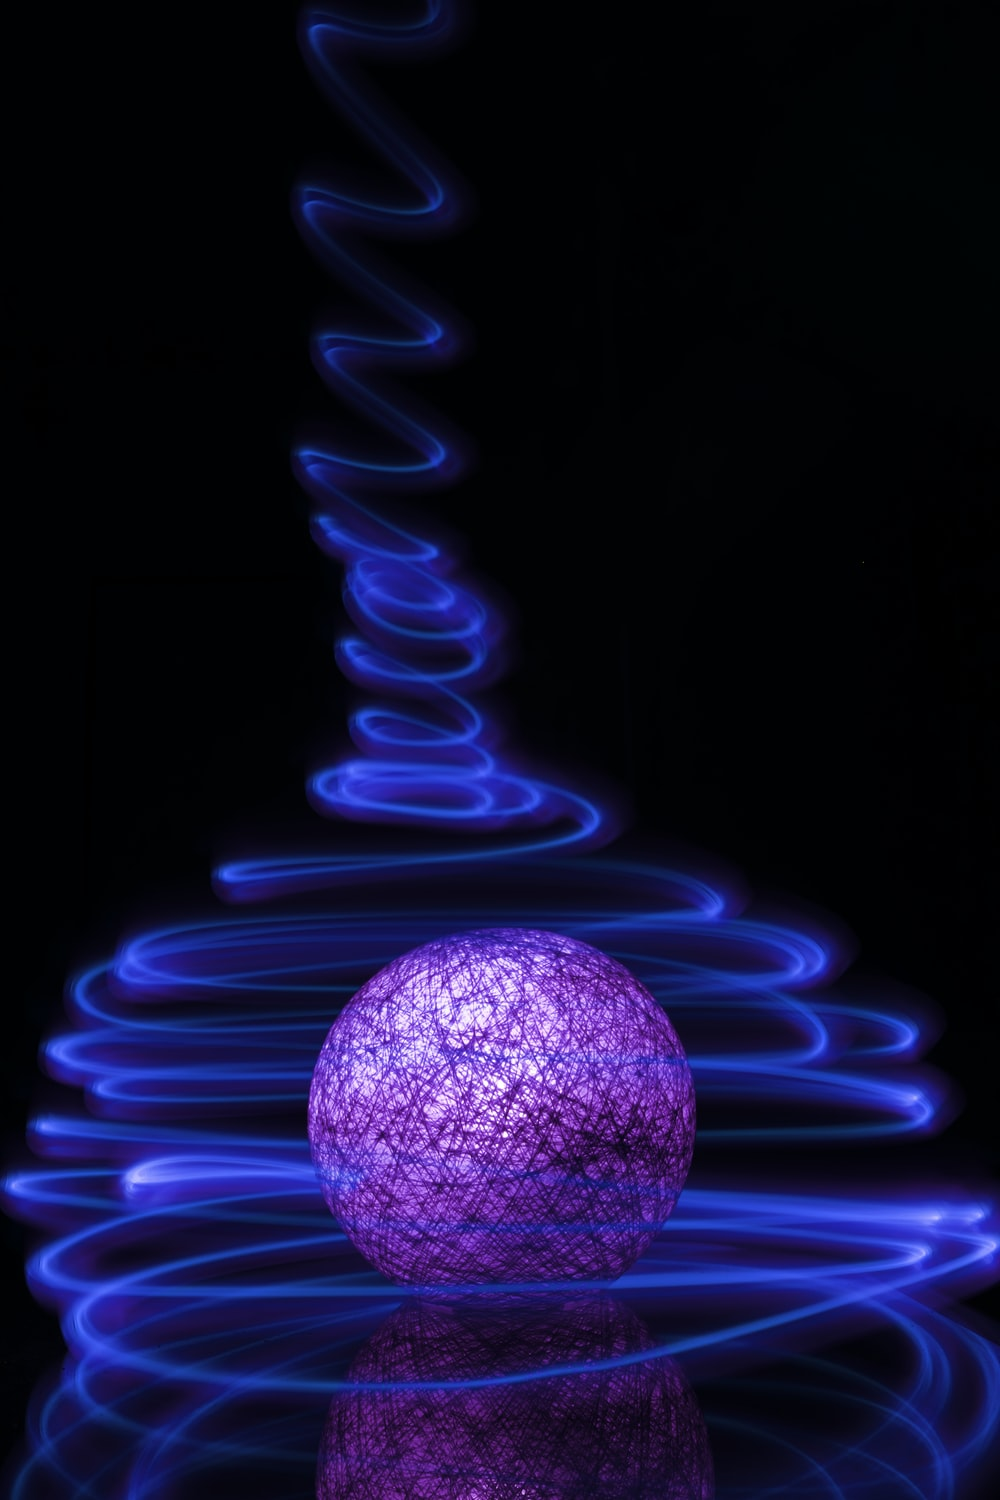 purple ball with light in the dark